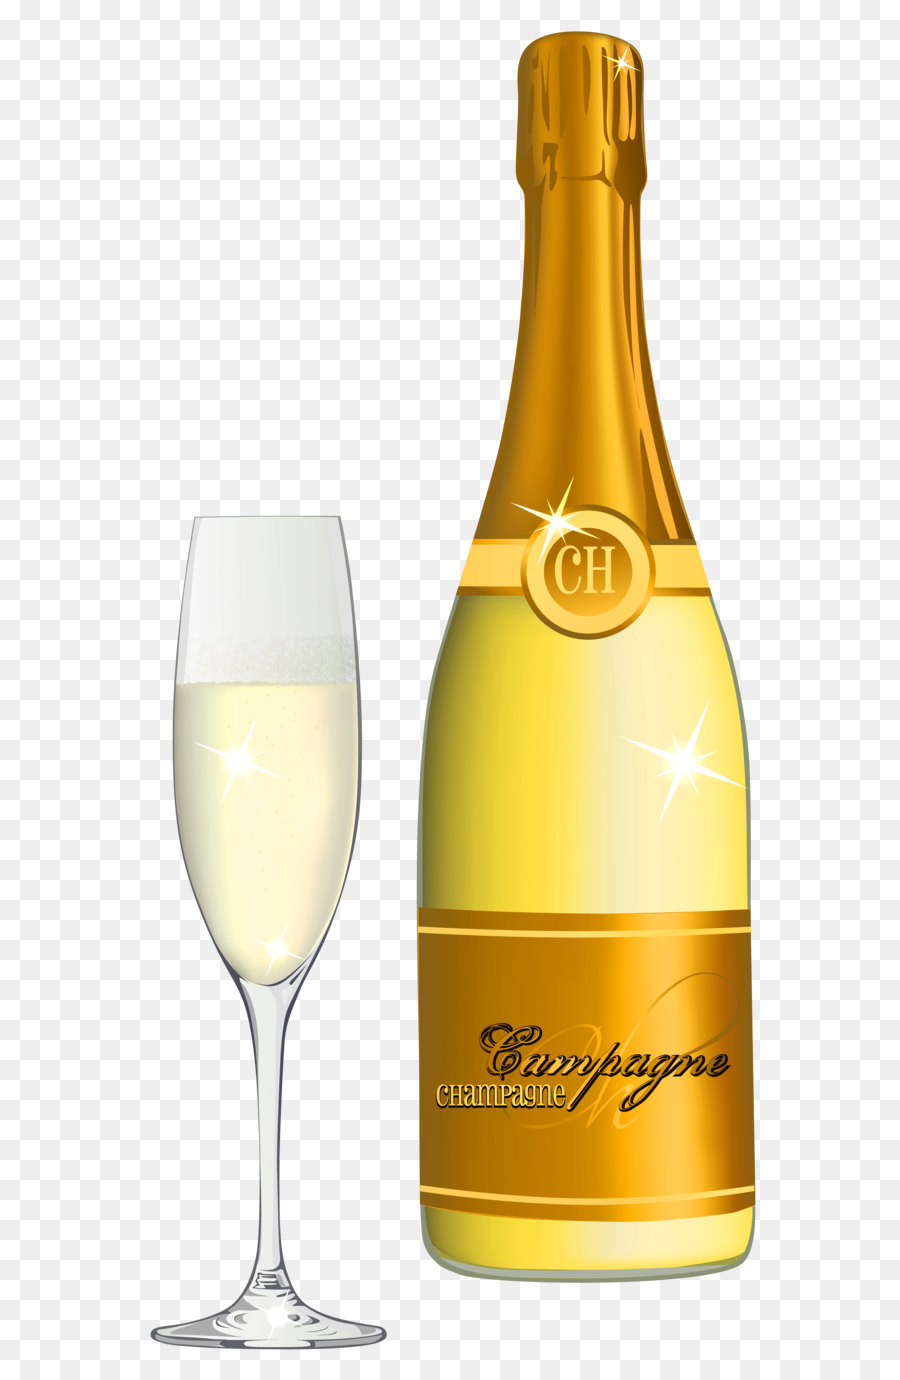 medium resolution of champagne cocktail champagne cocktail glass bottle drink png